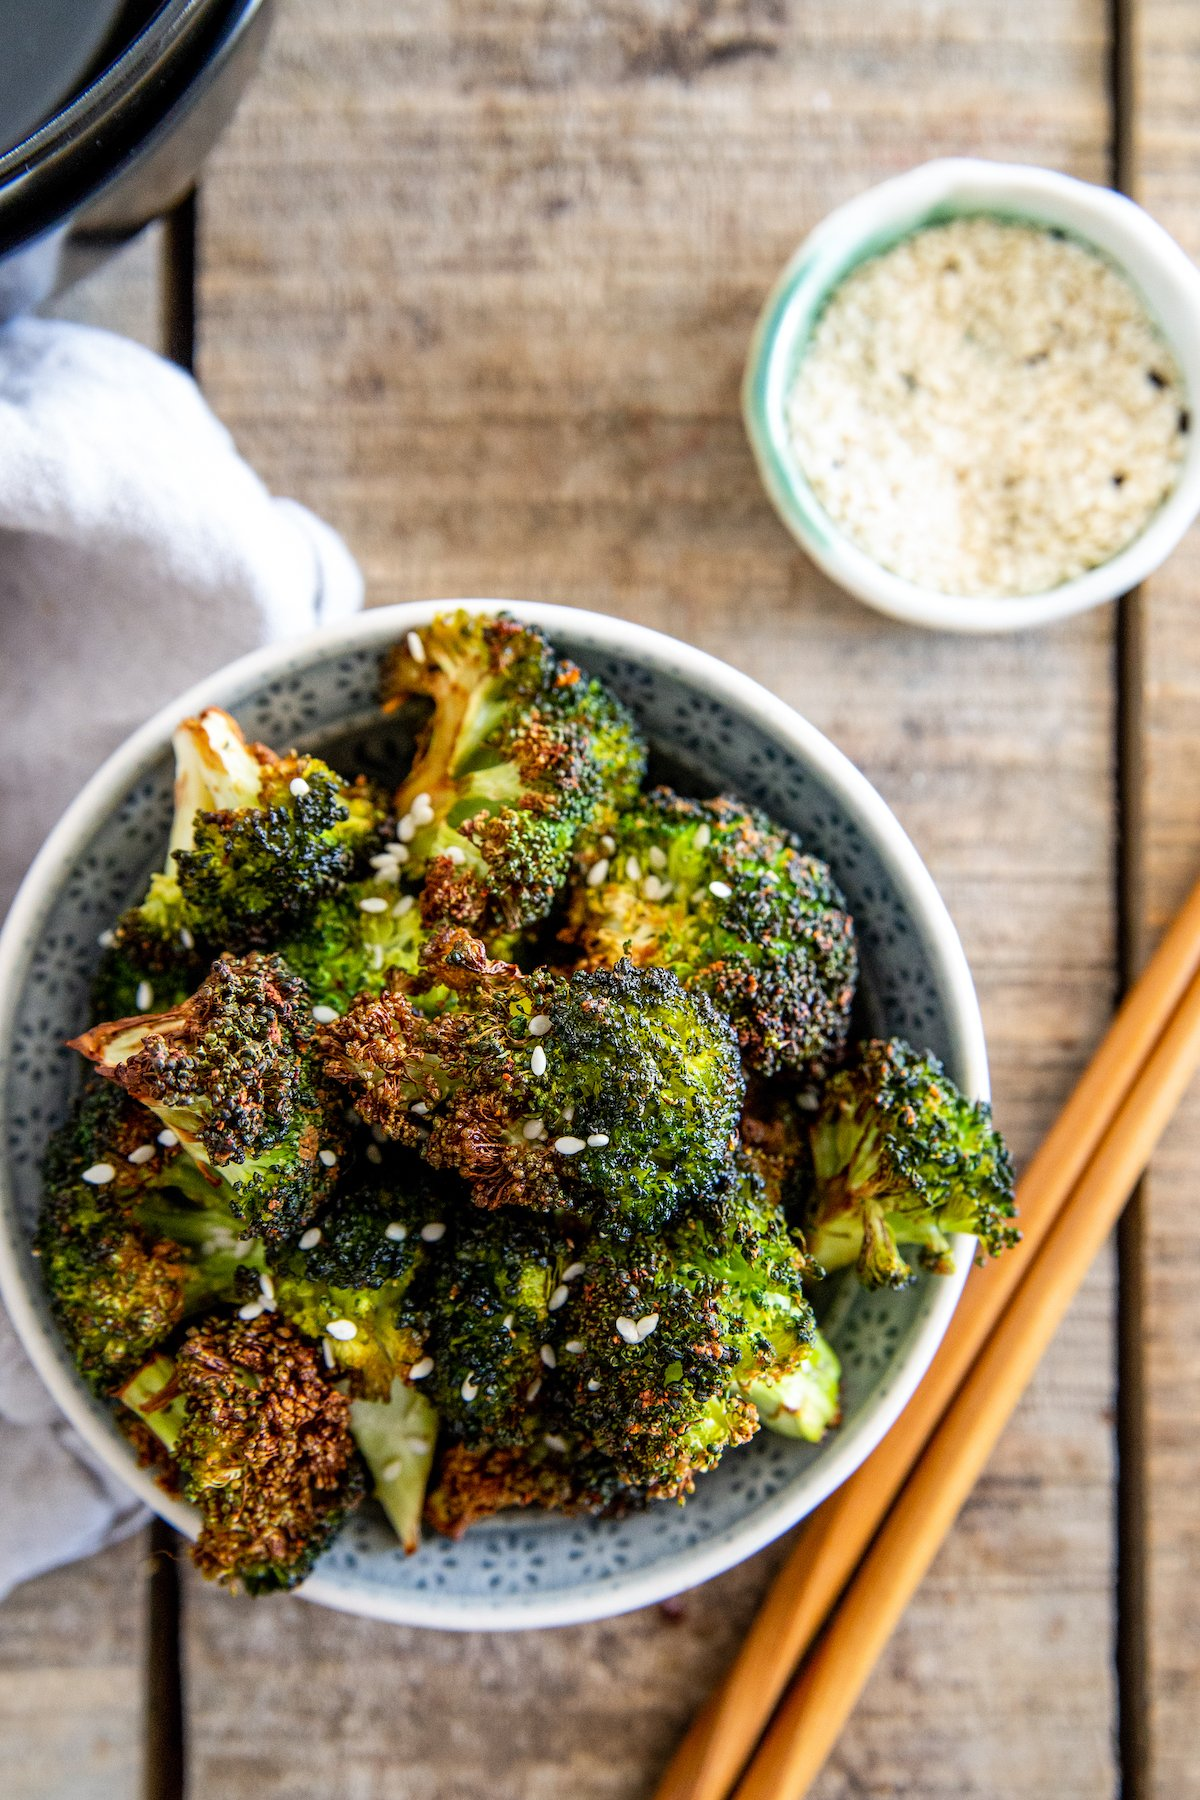 Asian roasted broccoli in a bowl.